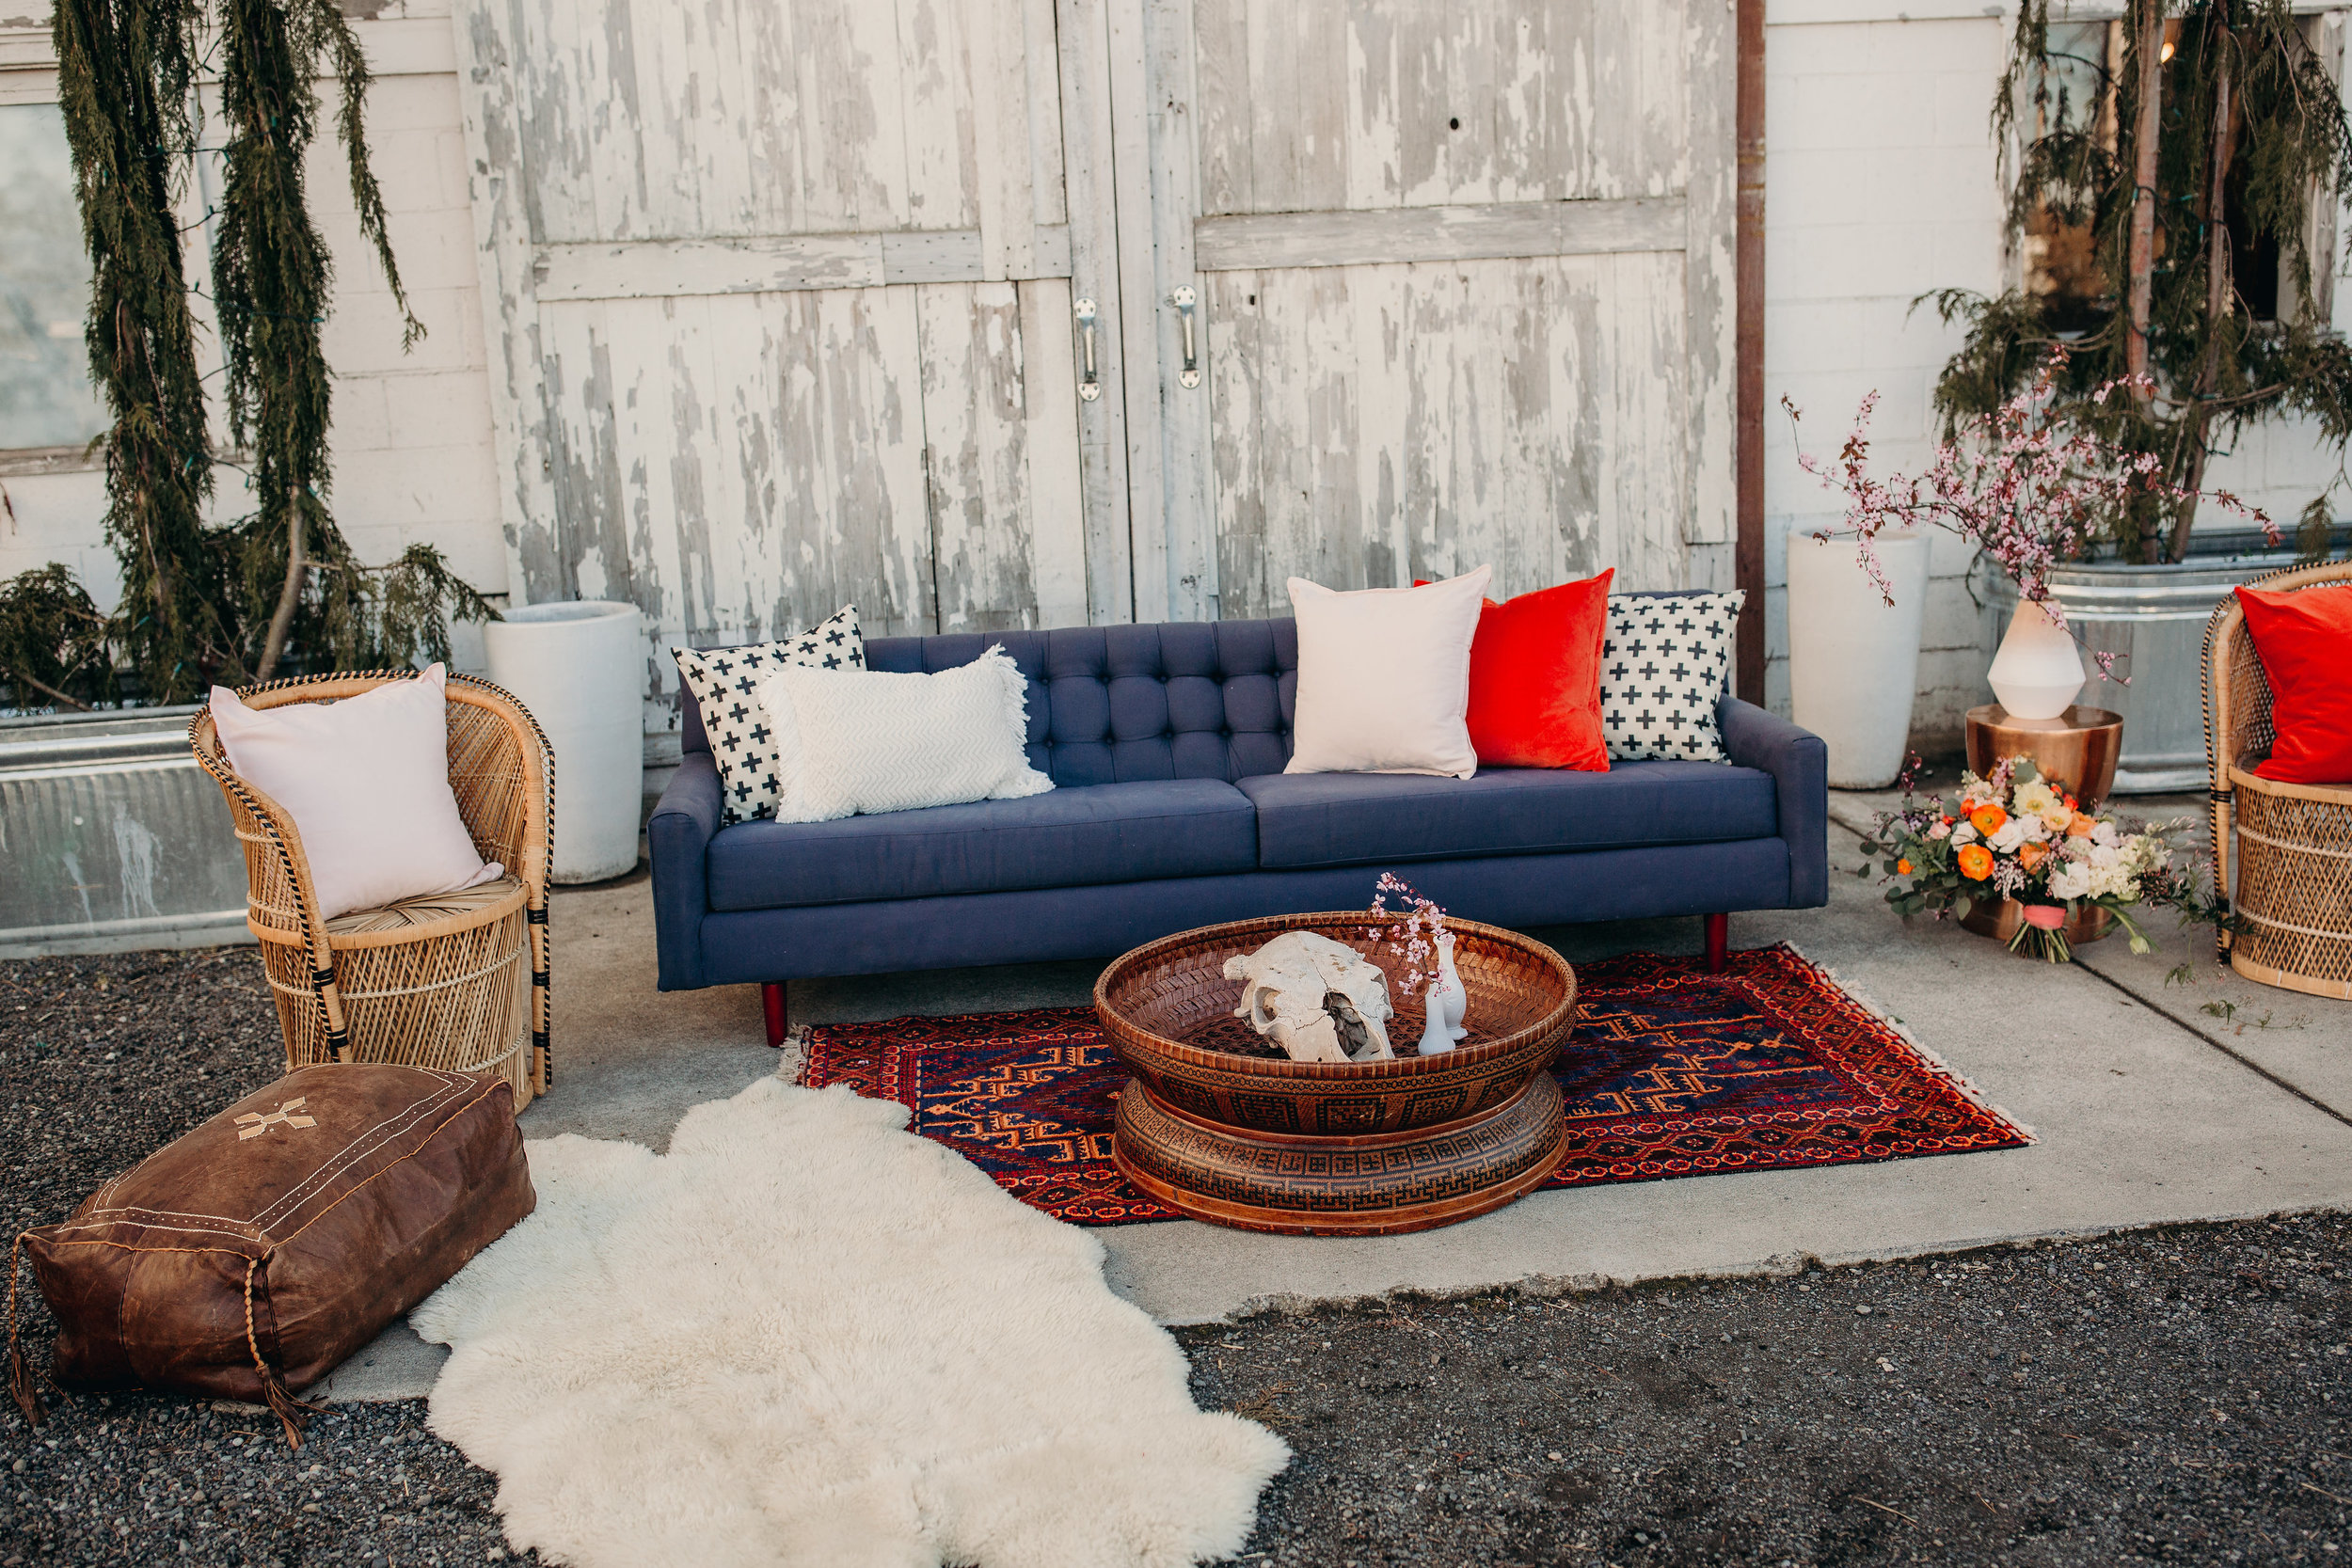 rentals from  WANDER EVENTS , STYLING by Rock & Stone